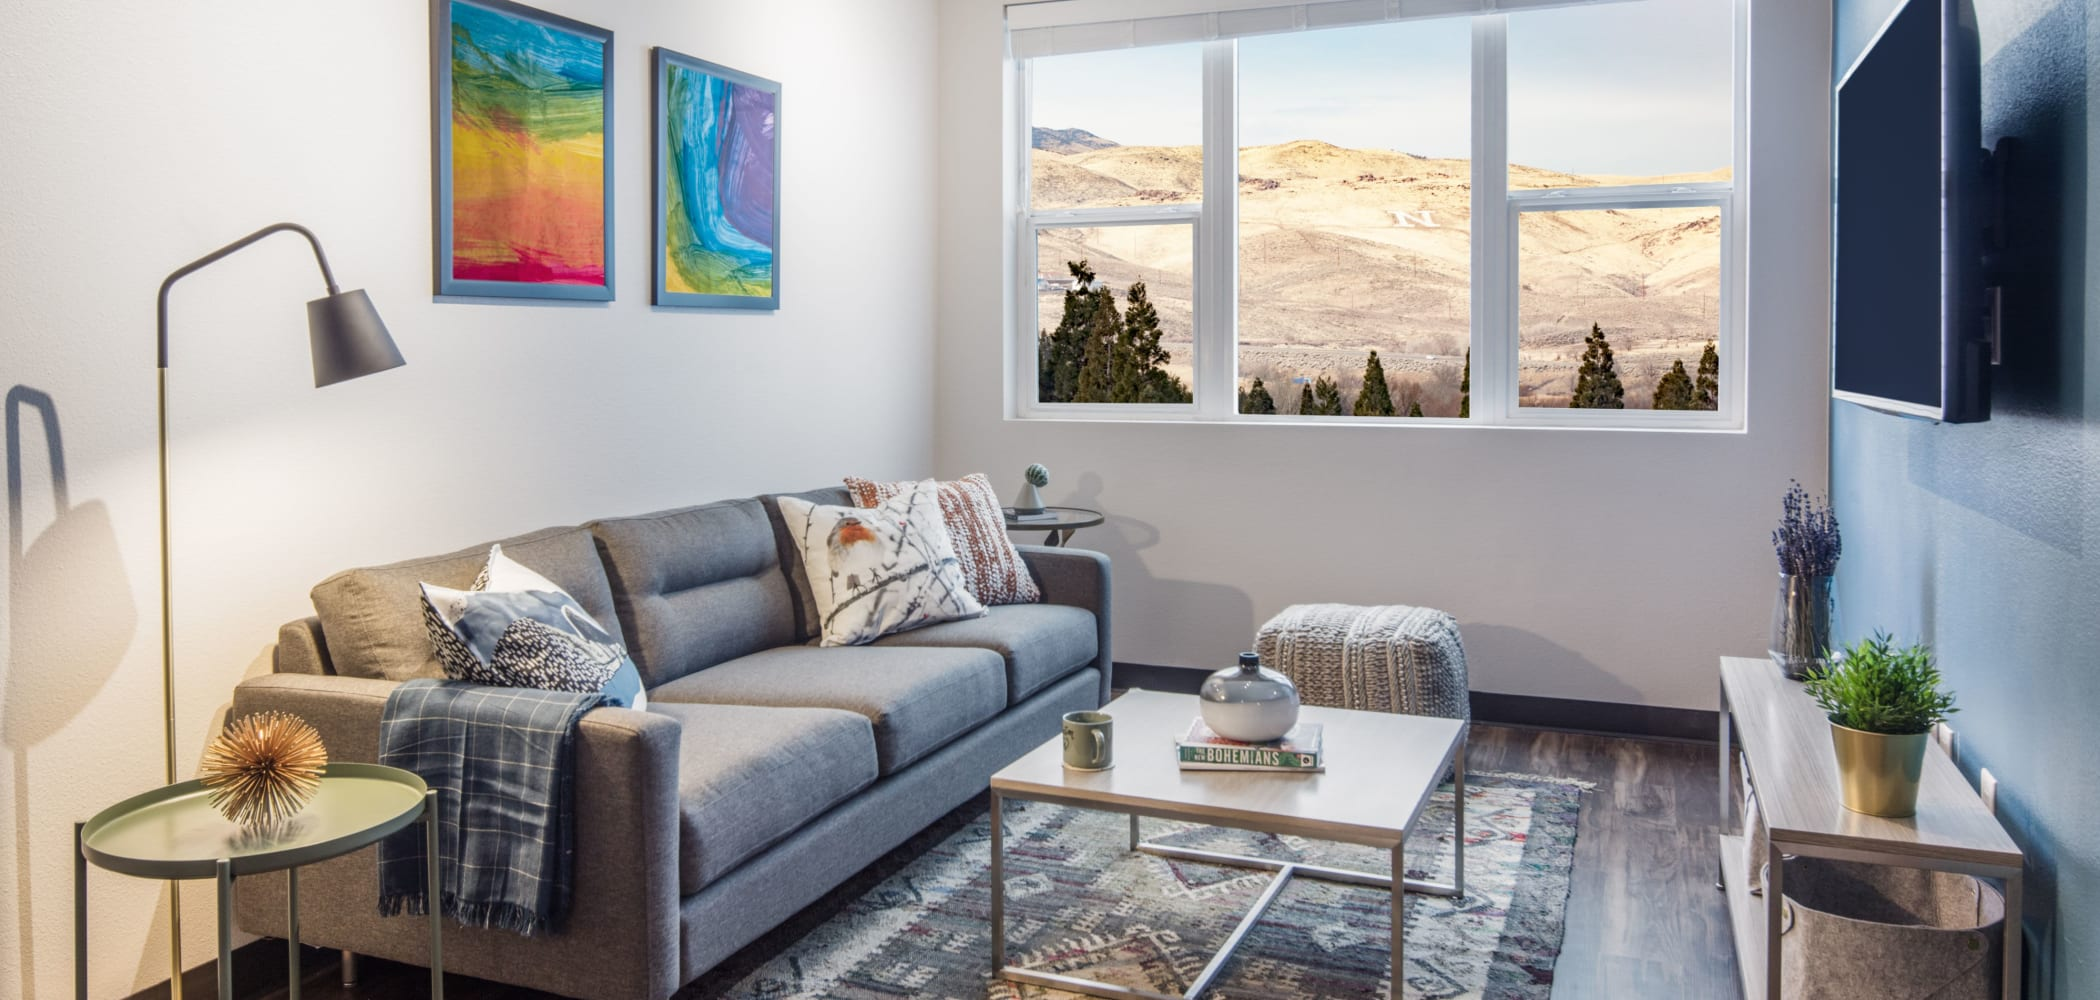 Living room with a view at IDENTITY Reno in Reno, Nevada